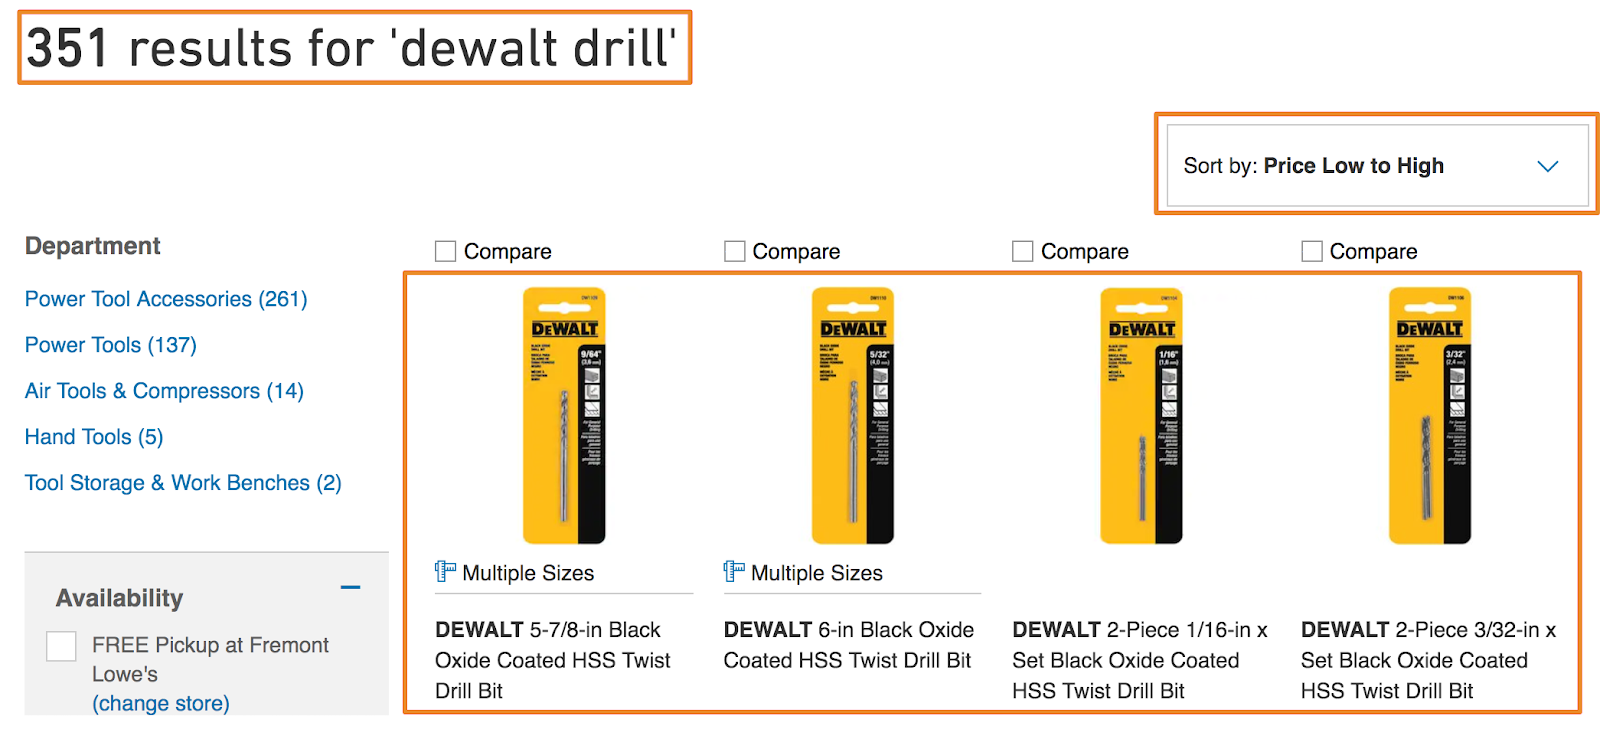 lowes_dewalt_drill_price-4